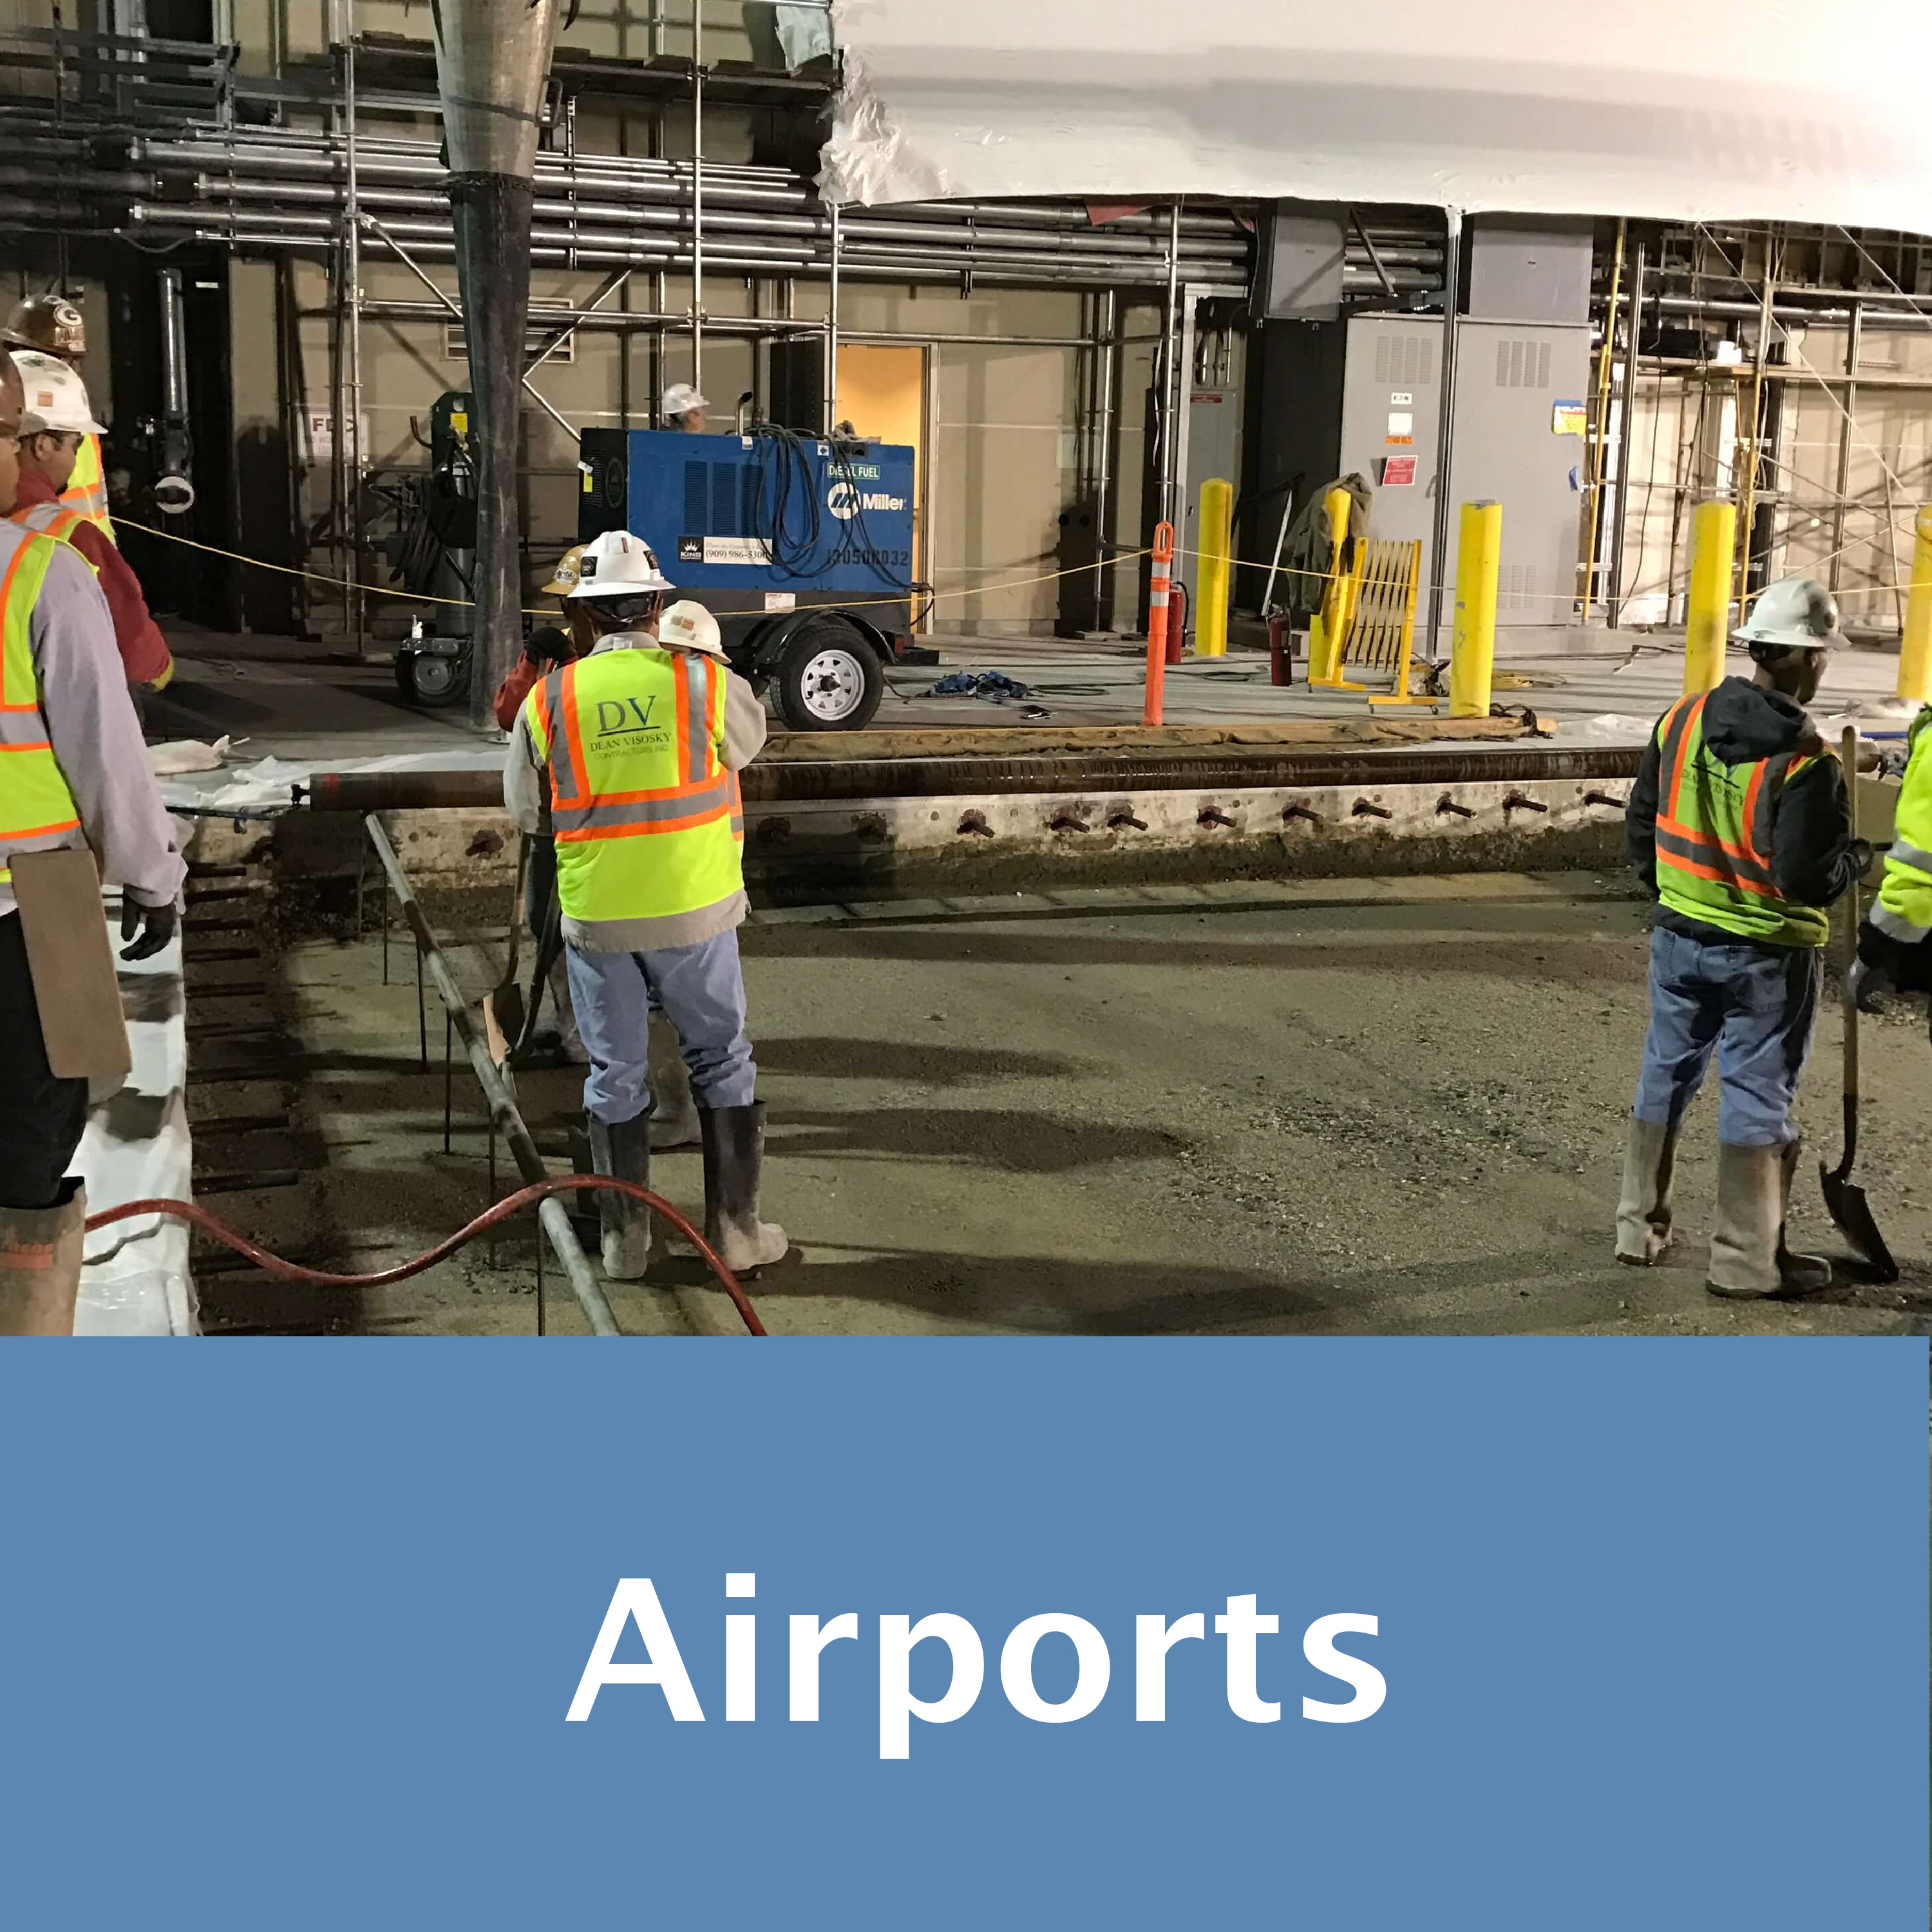 DV Airports Projects